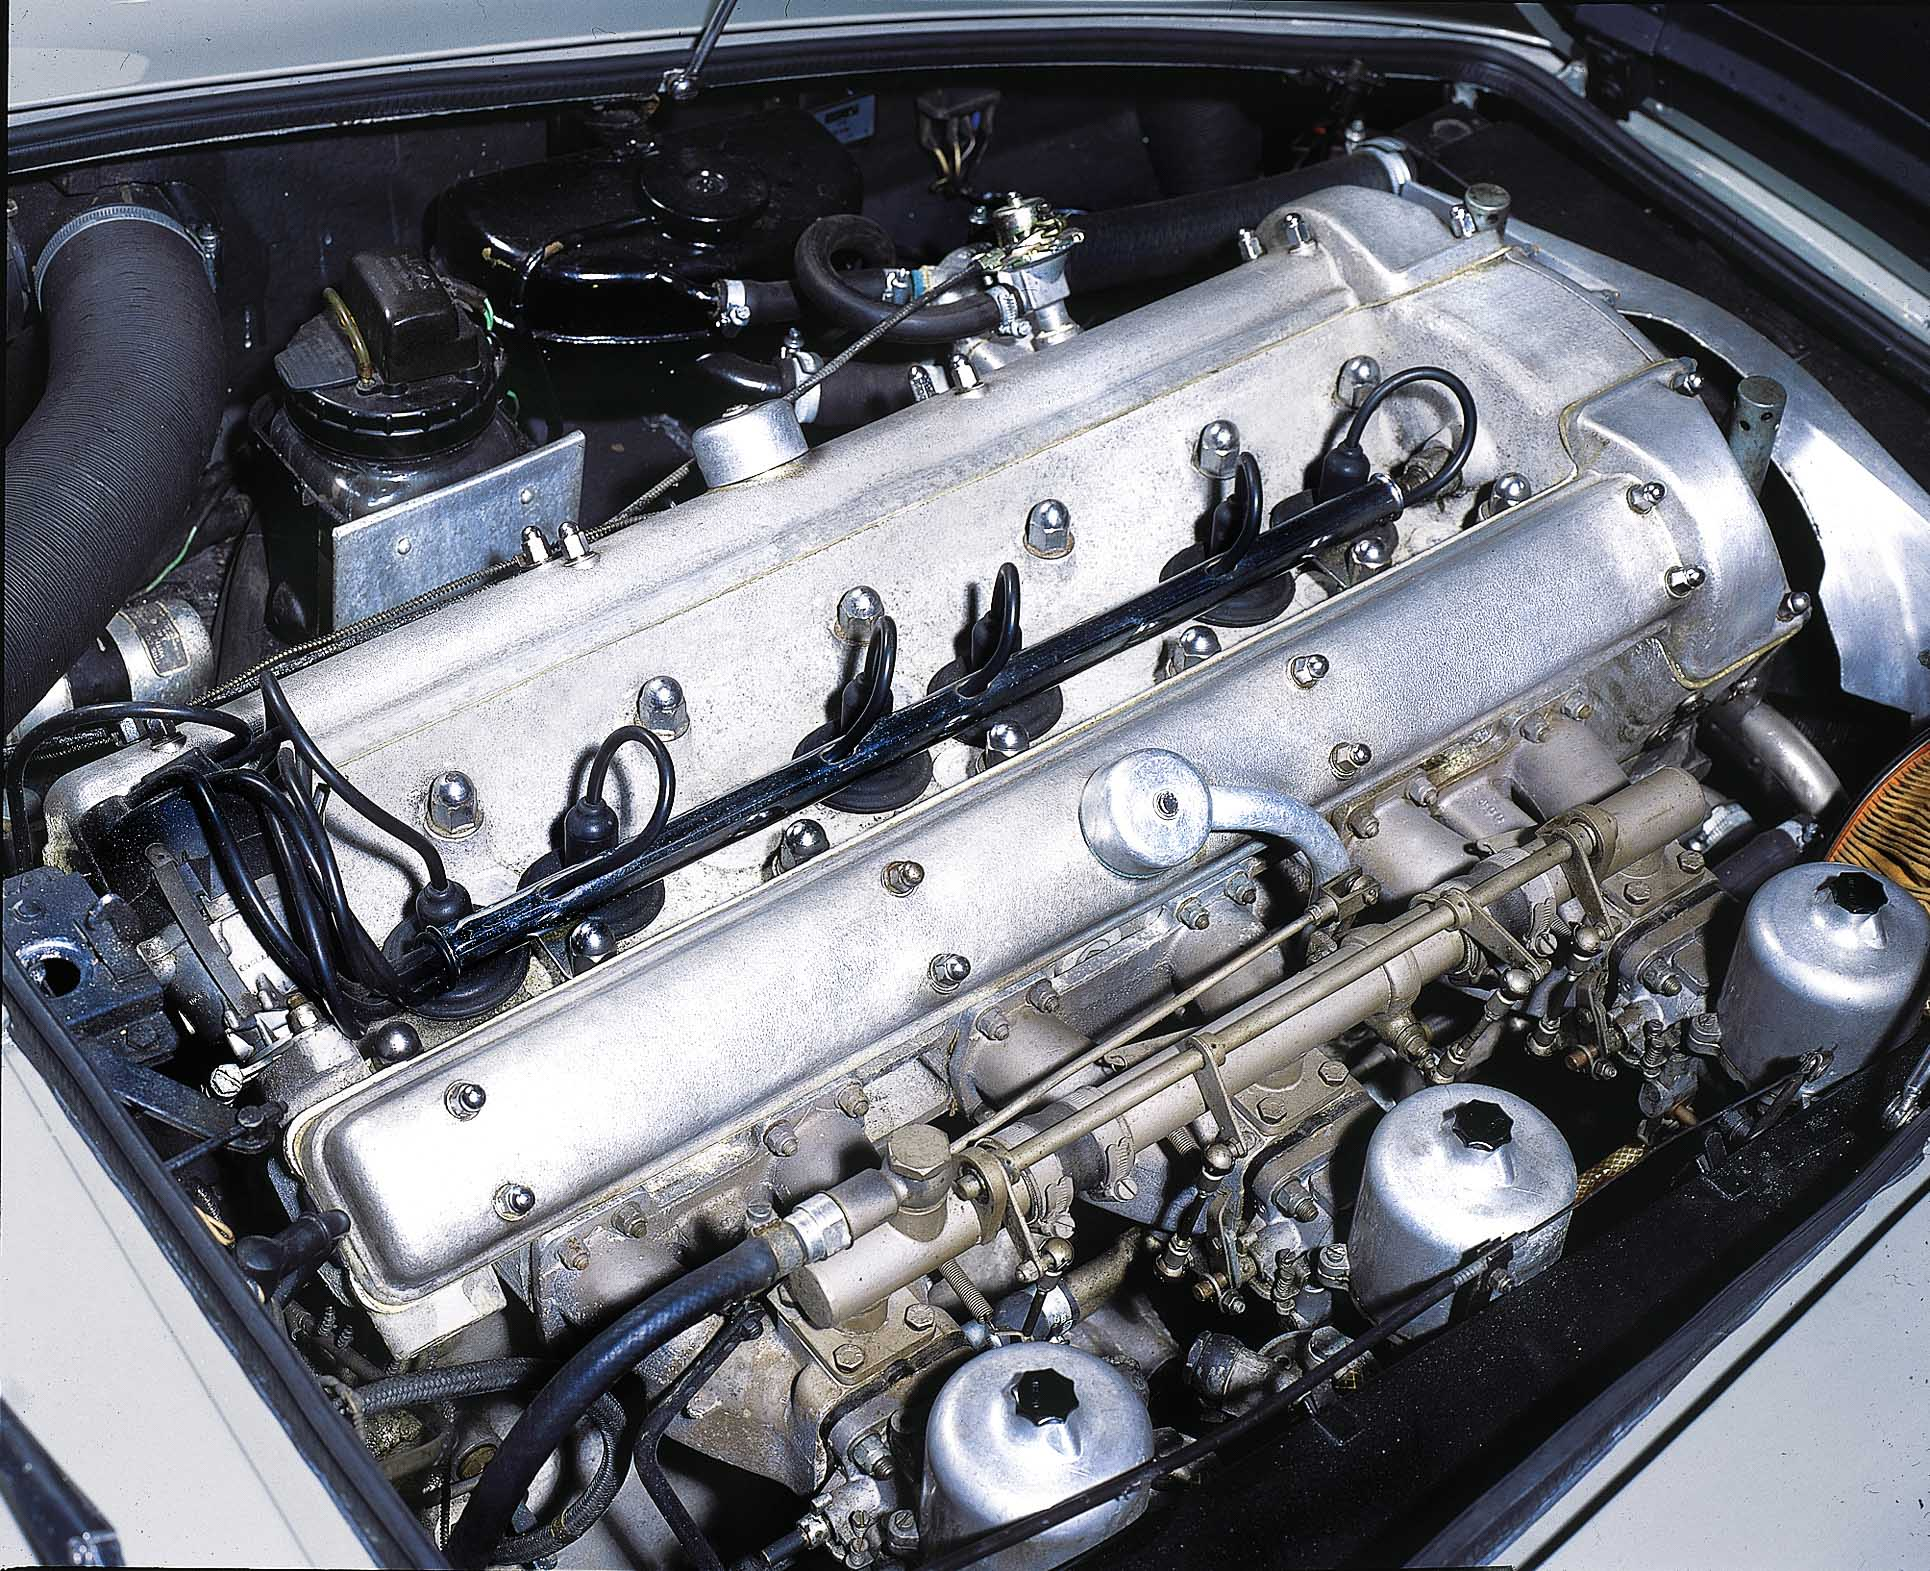 1965 Aston Martin DB5 Engine